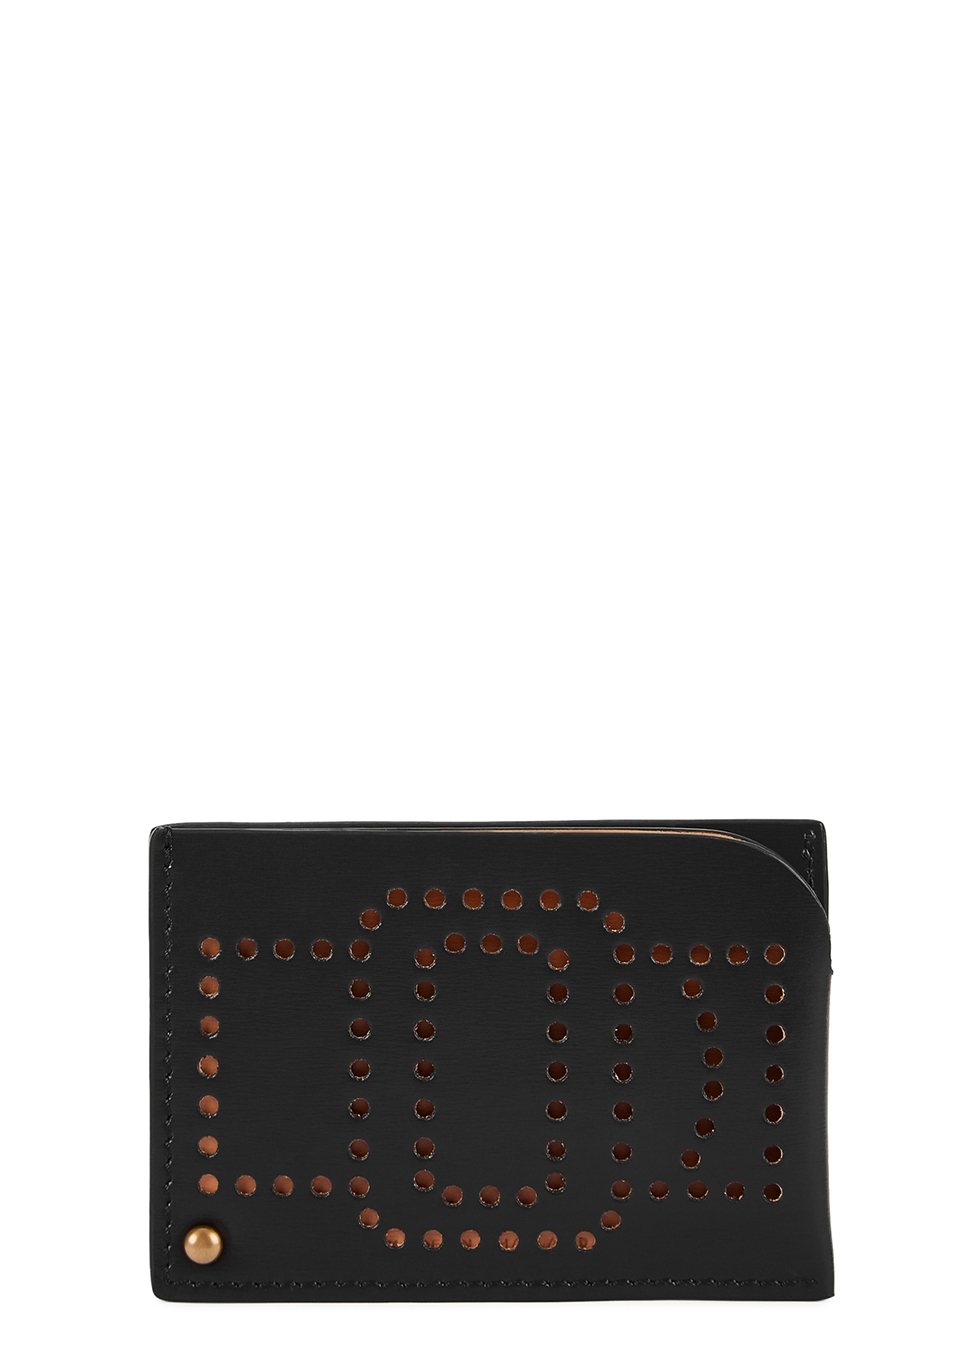 Black perforated leather card holder